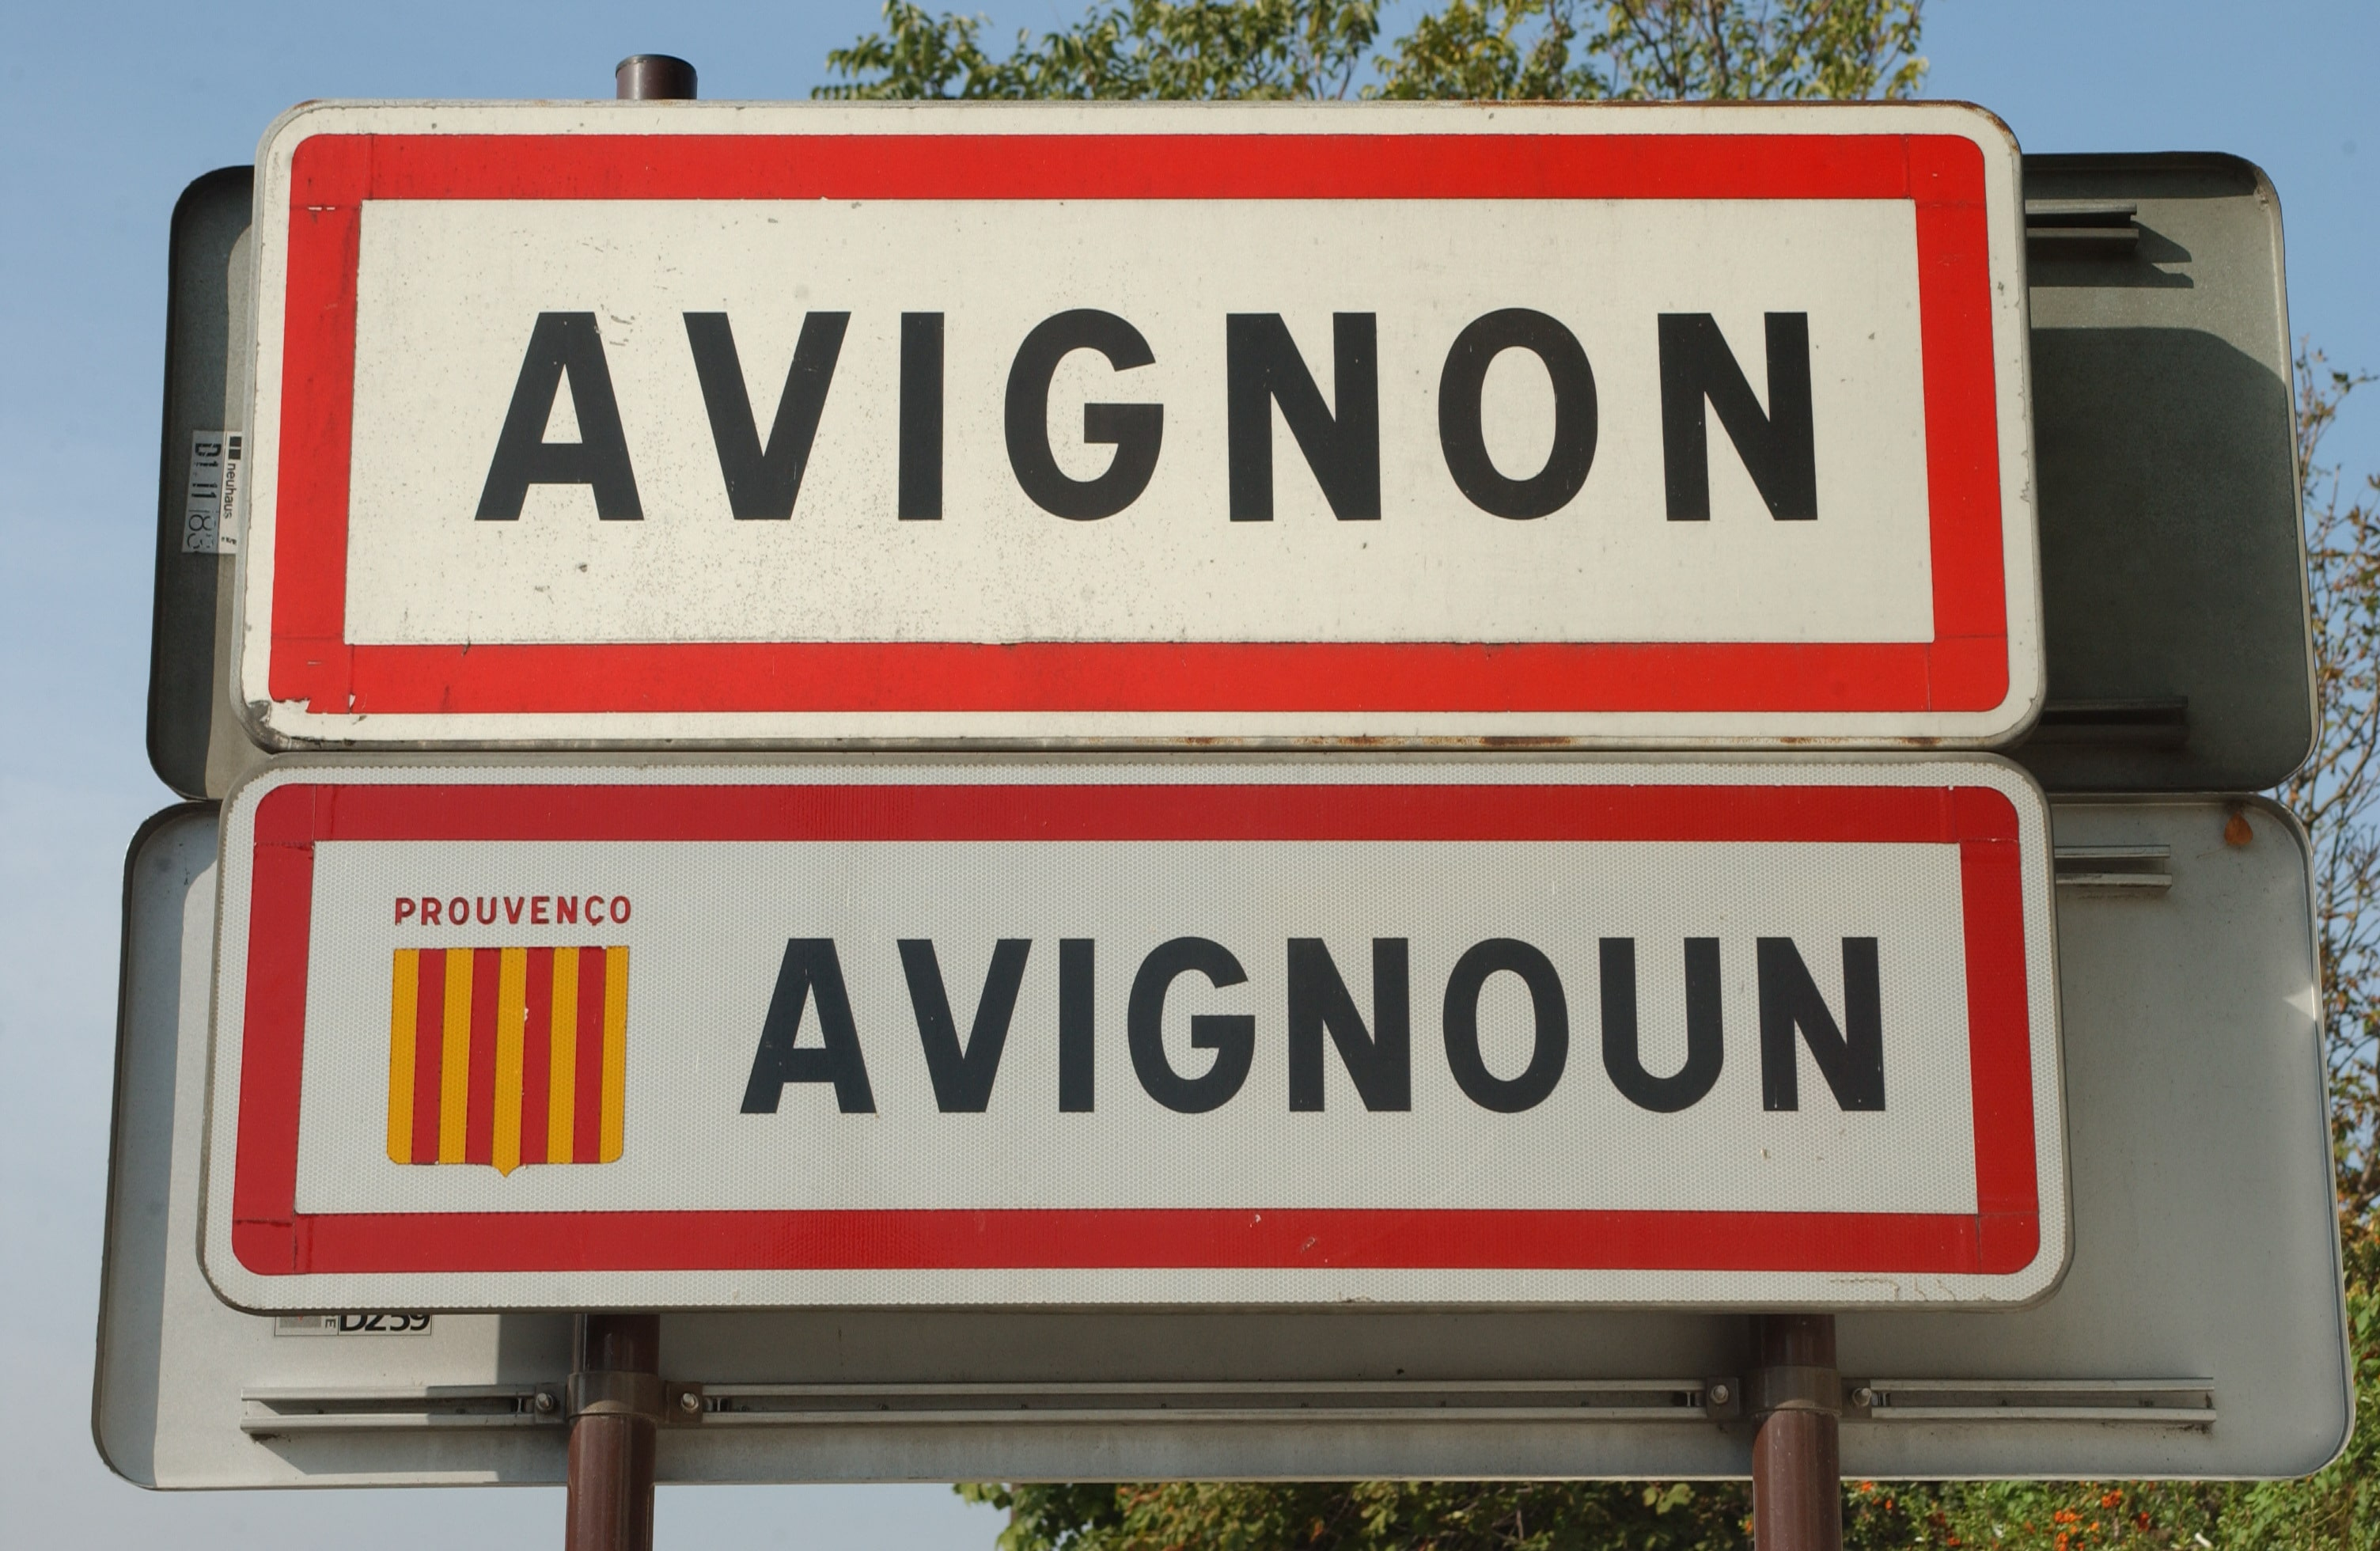 How to come to Avignon?